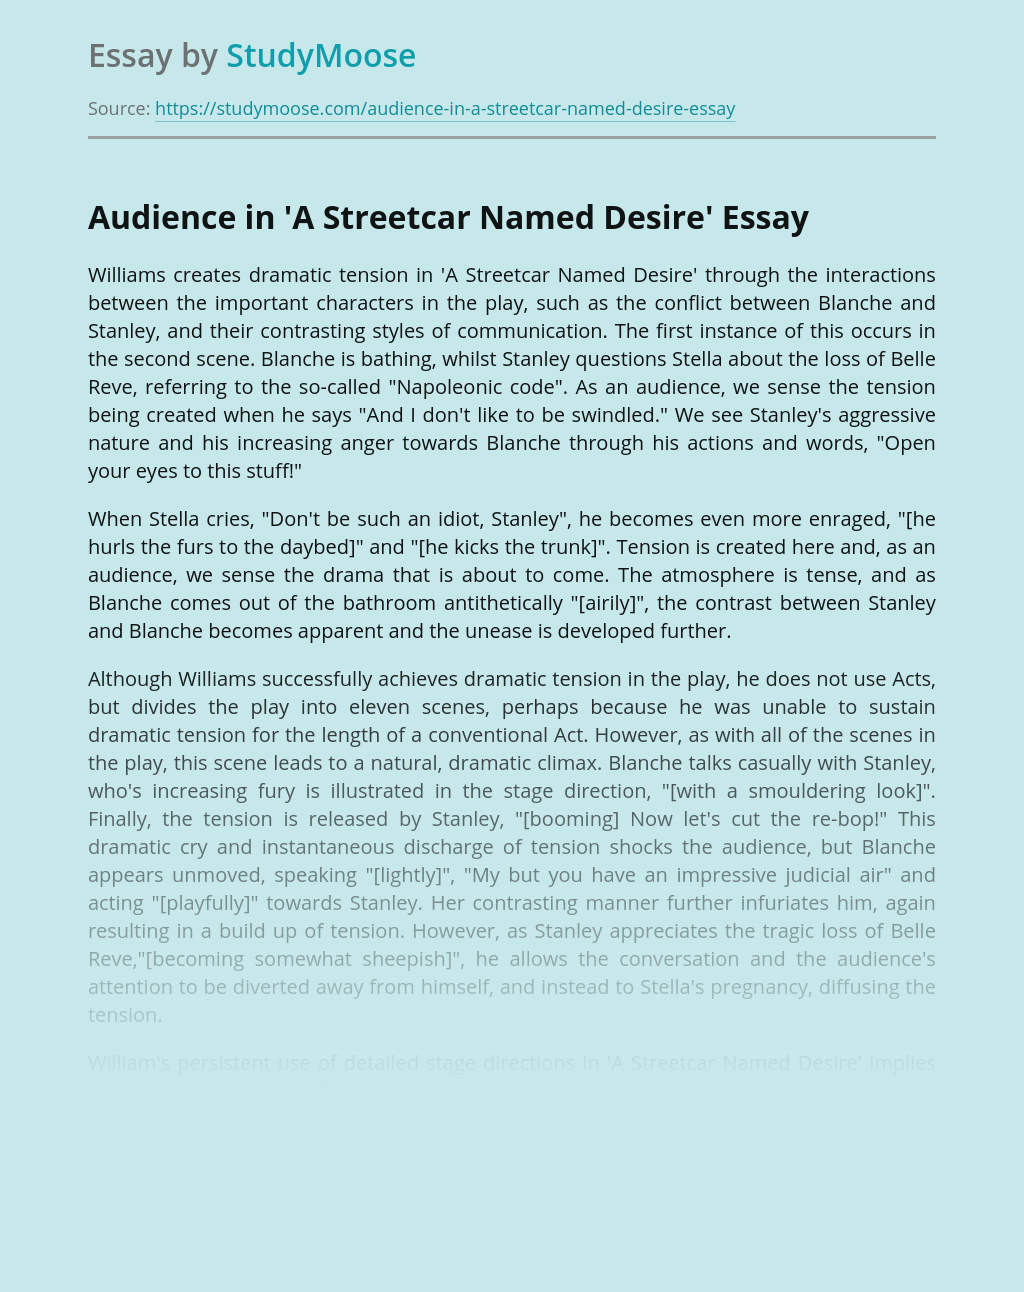 Audience in 'A Streetcar Named Desire'